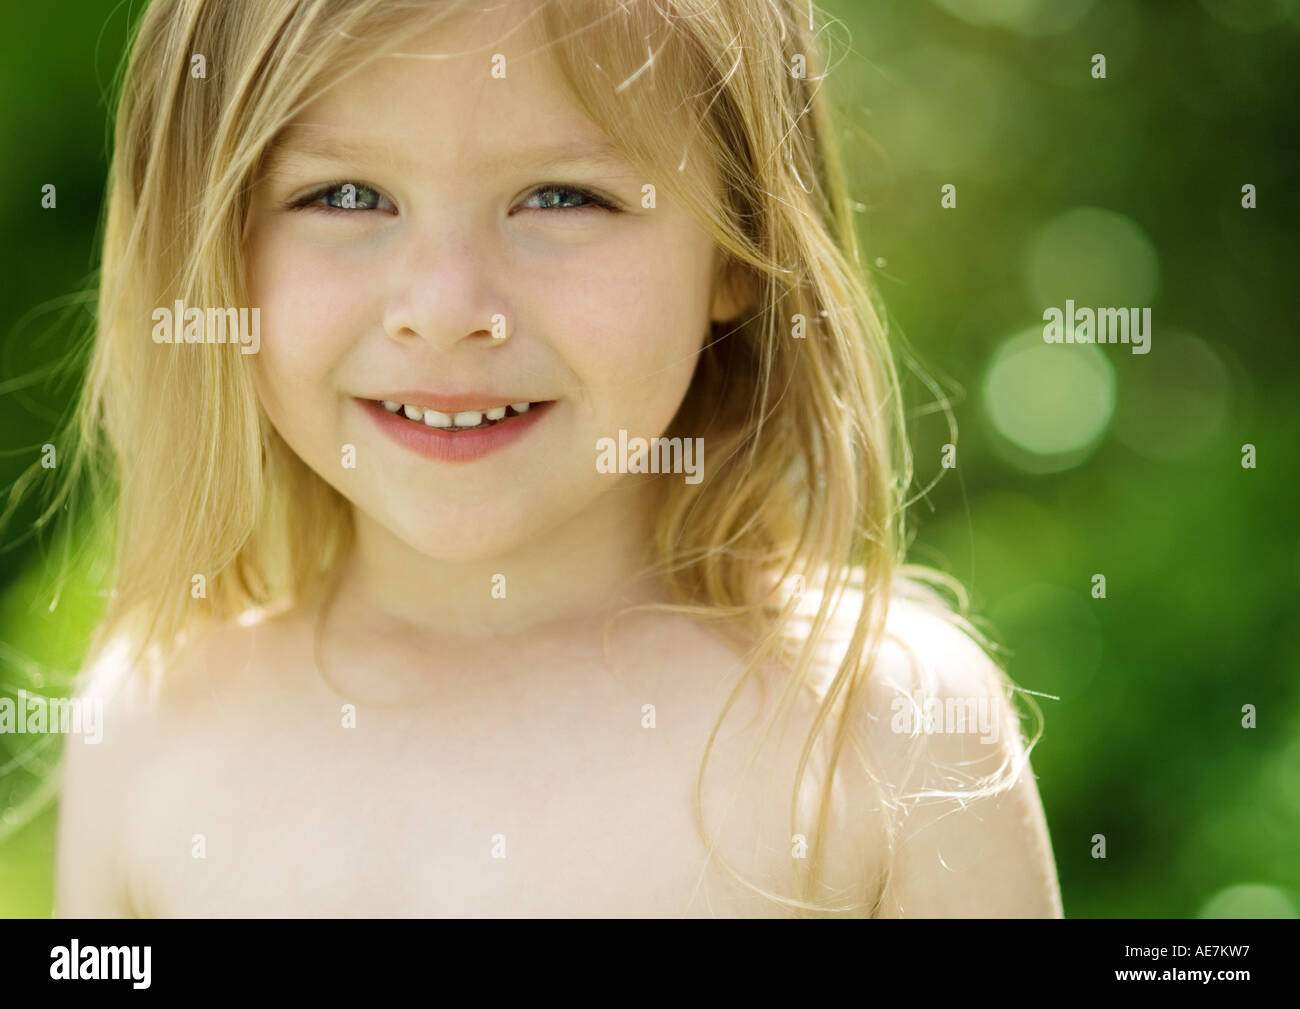 Little Girl With Bare Shoulders Portrait Stock Photo